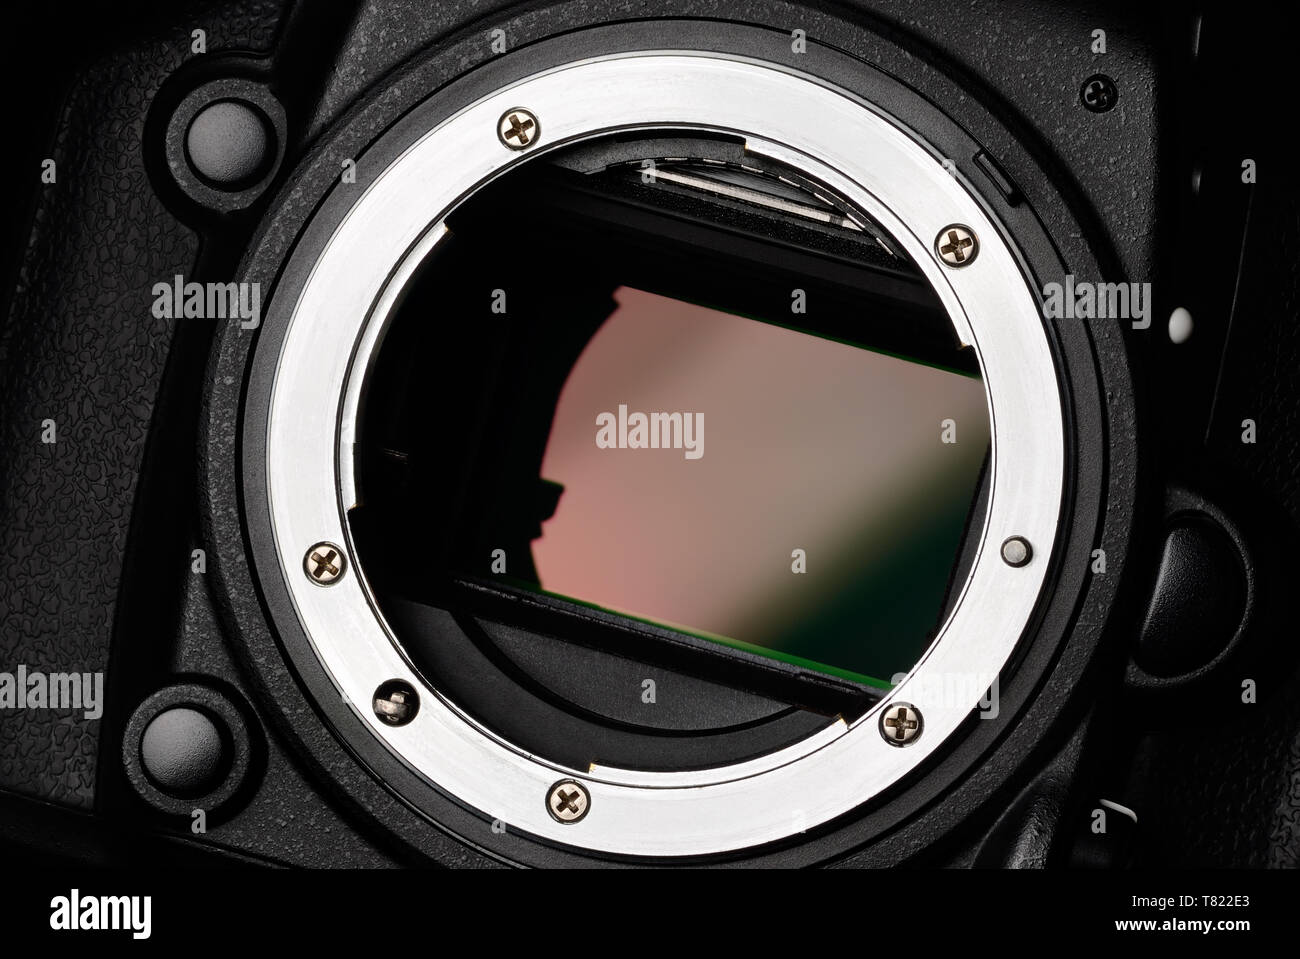 Digital camera full frame sensor and lens mount close-up - Stock Image